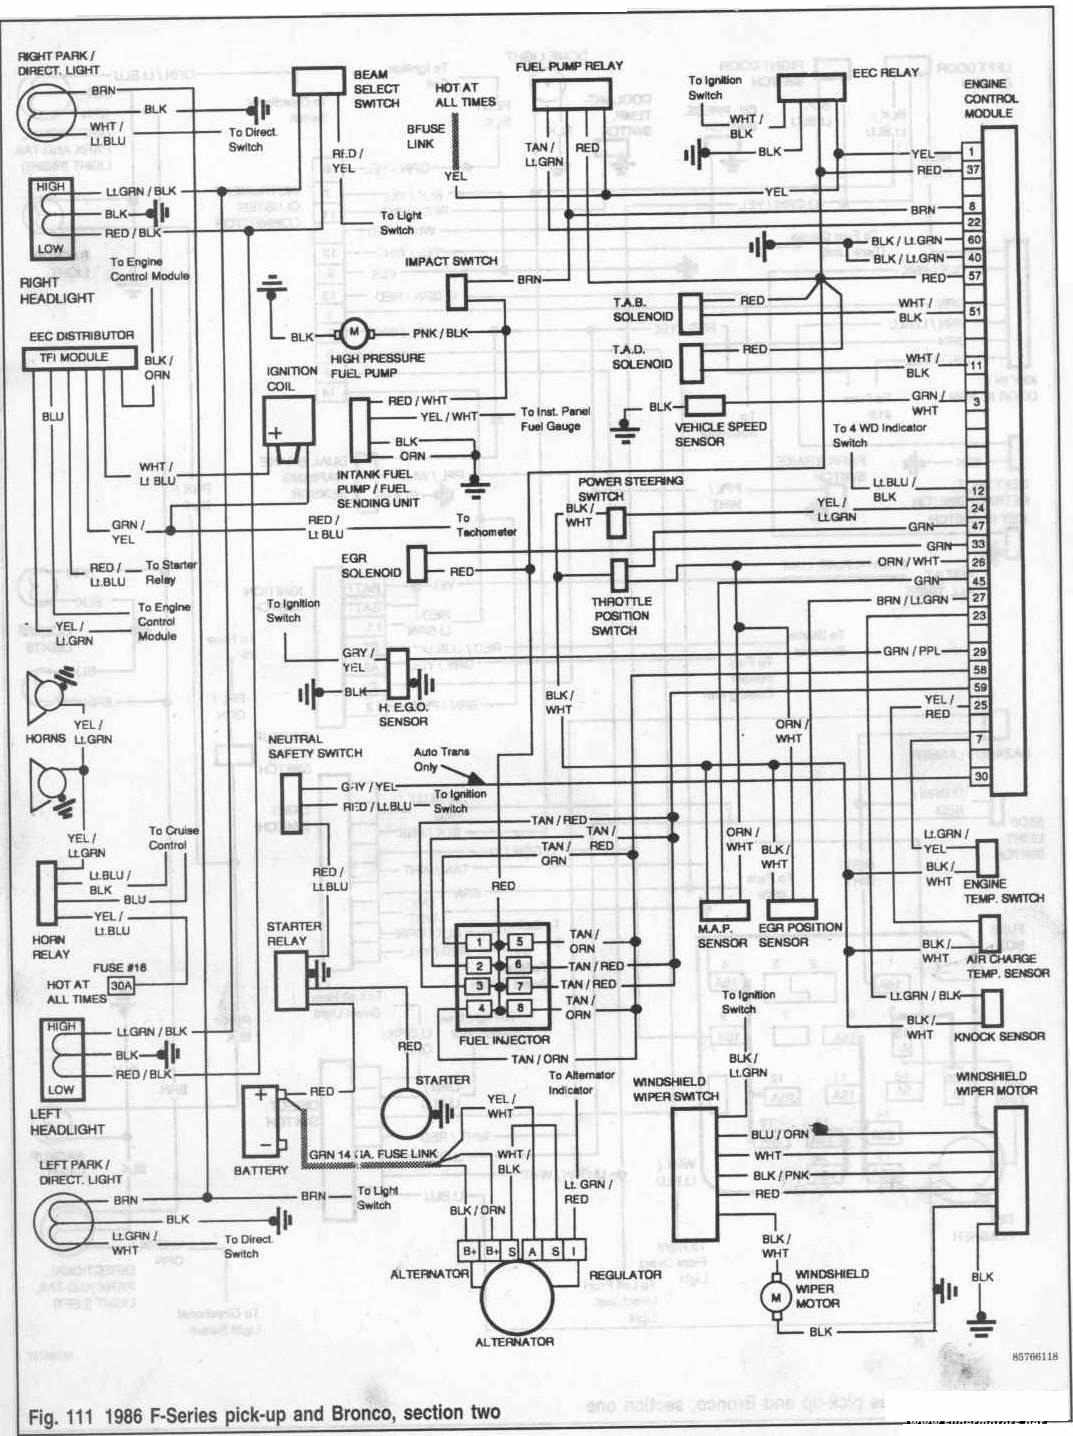 86 Ford F 150 351 Wiring Diagram Diagrams Schematic Hemi Engine Firing Order Library 1986 Electrical Schematics